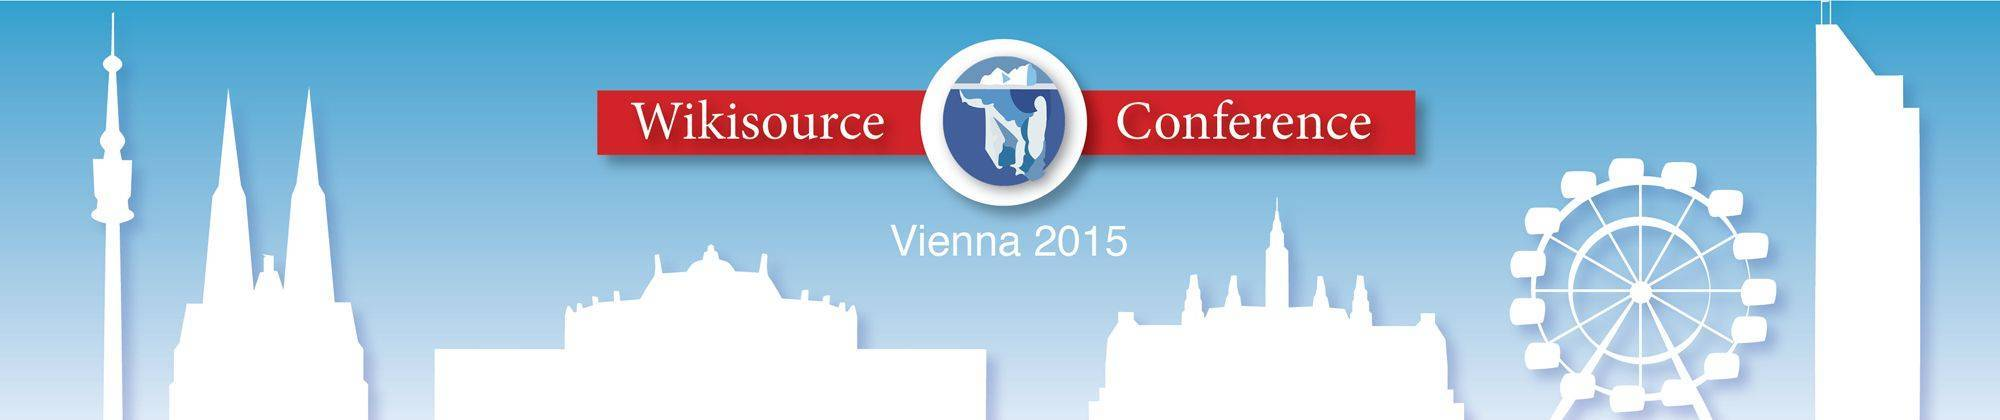 Wikisource_Conference_2015_header